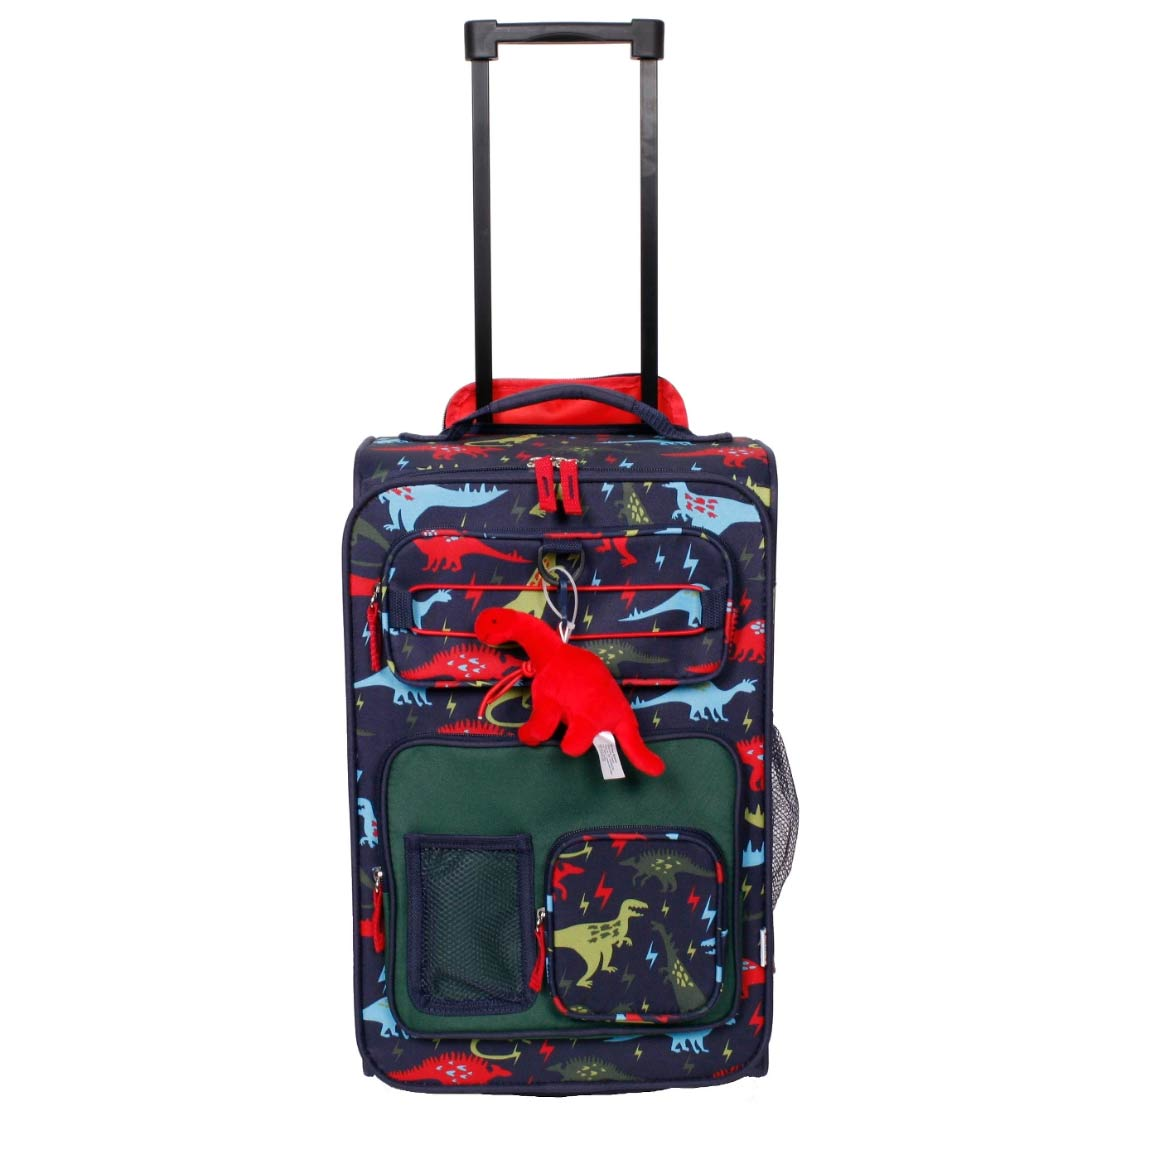 "Crckt 18"" Kids Carry-On Suitcase"